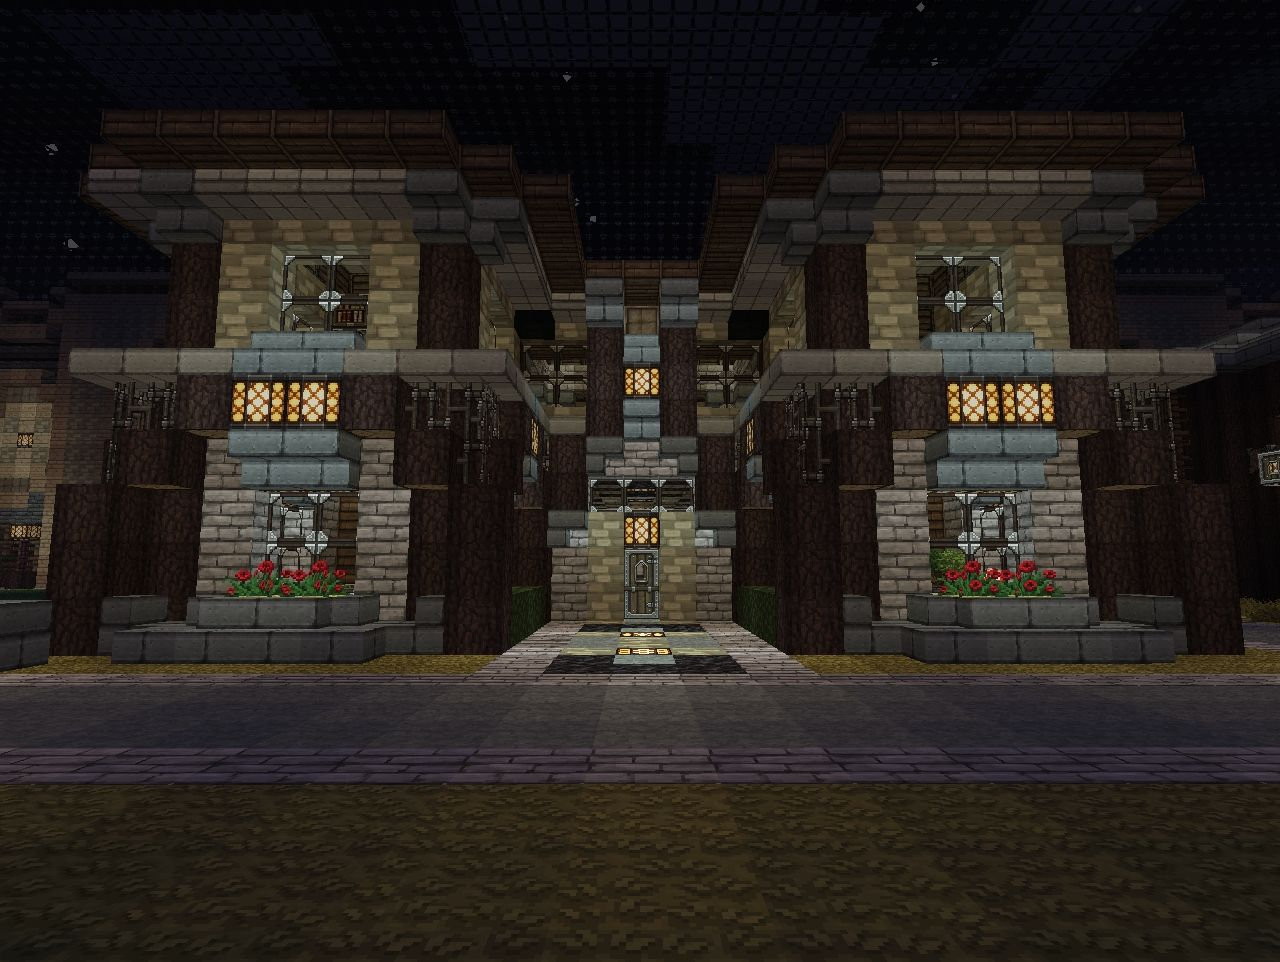 Minecraft Bedroom 4 Bedroom House With Arch Disign Minecraft Project